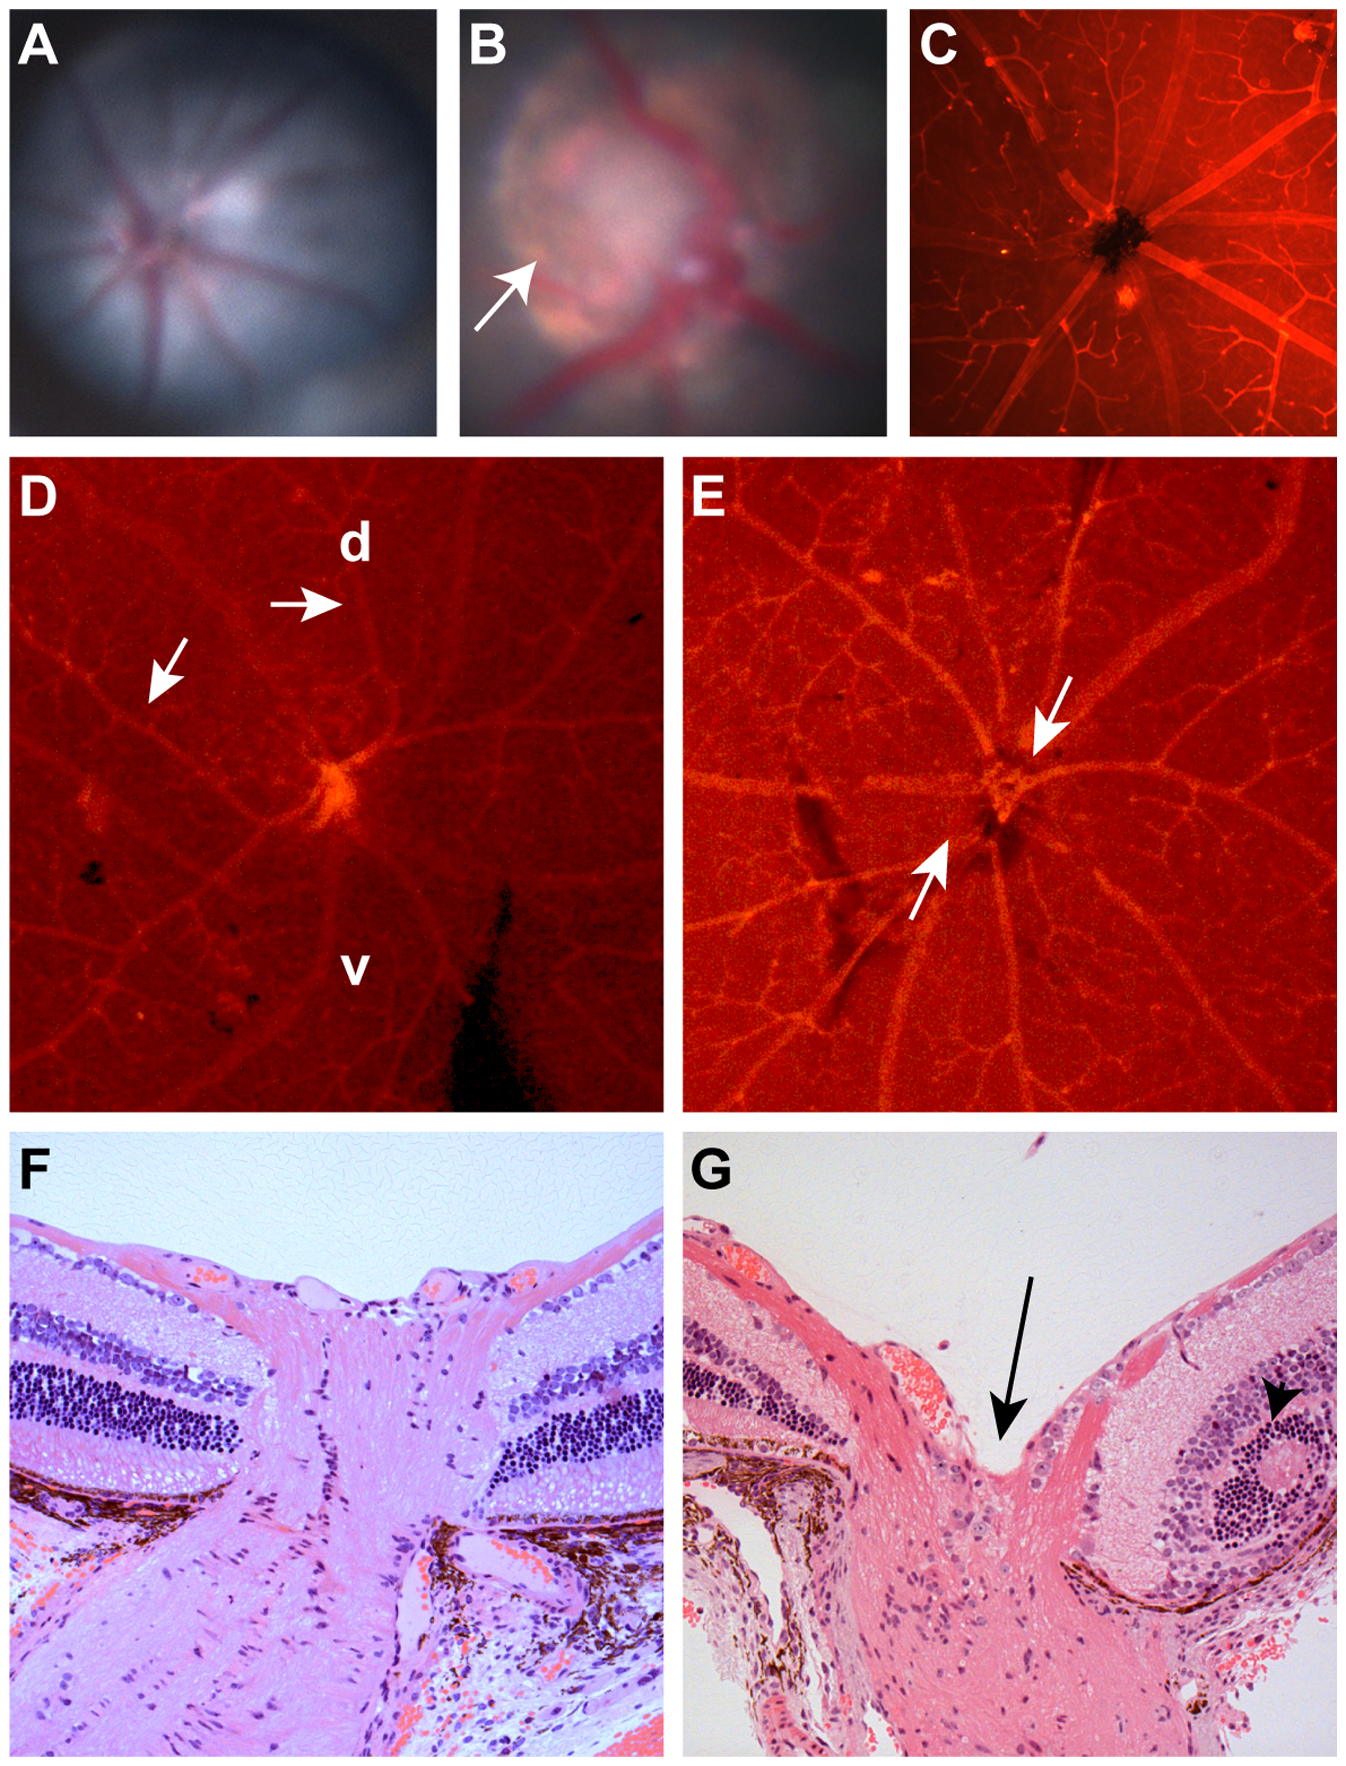 Clinical ocular phenotype in C57BL/6-<i>Pax2<sup>+/A220G</sup></i> mice compared to wild-type, C57BL/6 mice.